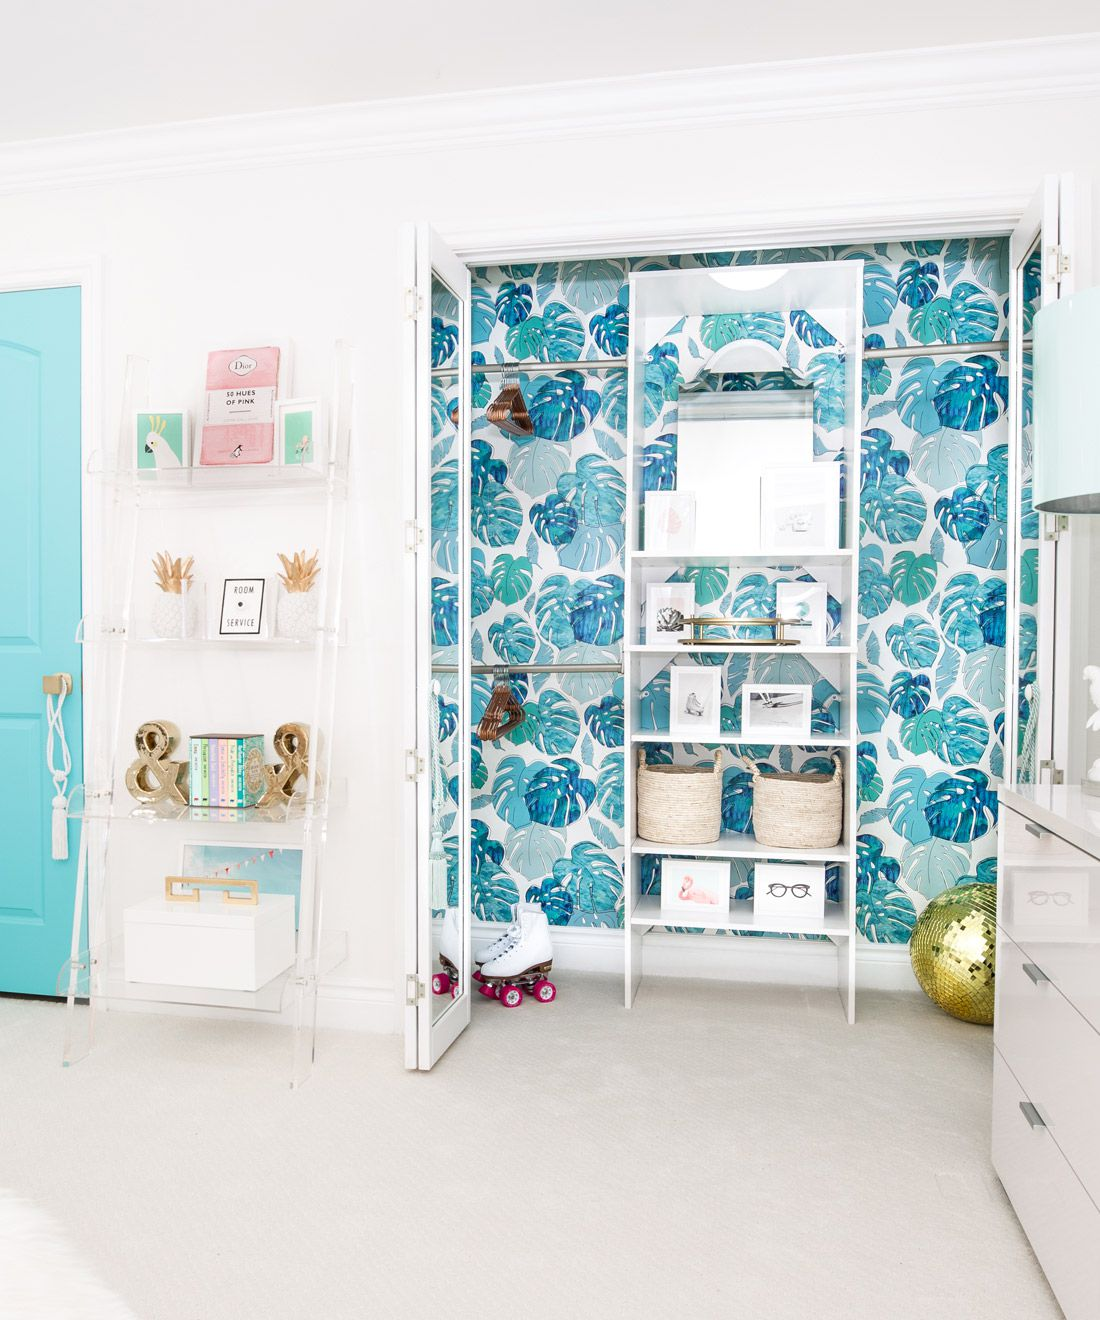 Tropicale Wallpaper • Tropical Style • Tween Bedroom • Turquoise Wallpaper • Kelly Lee • One Room Challenge